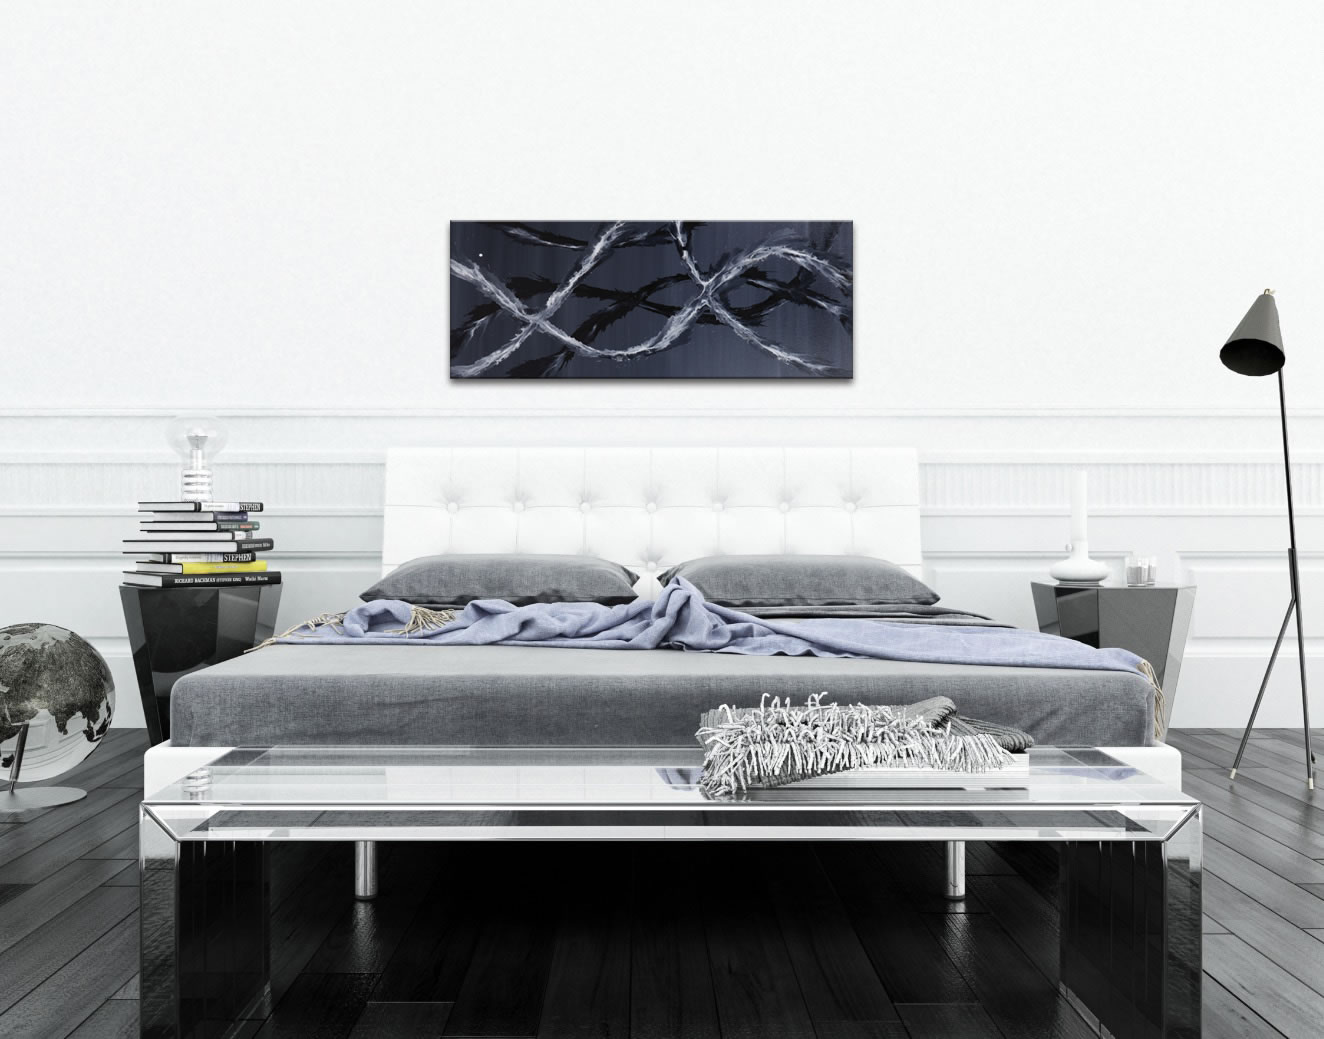 Black & White Waves : Minimalist Abstract Metal Art - Lifestyle Image